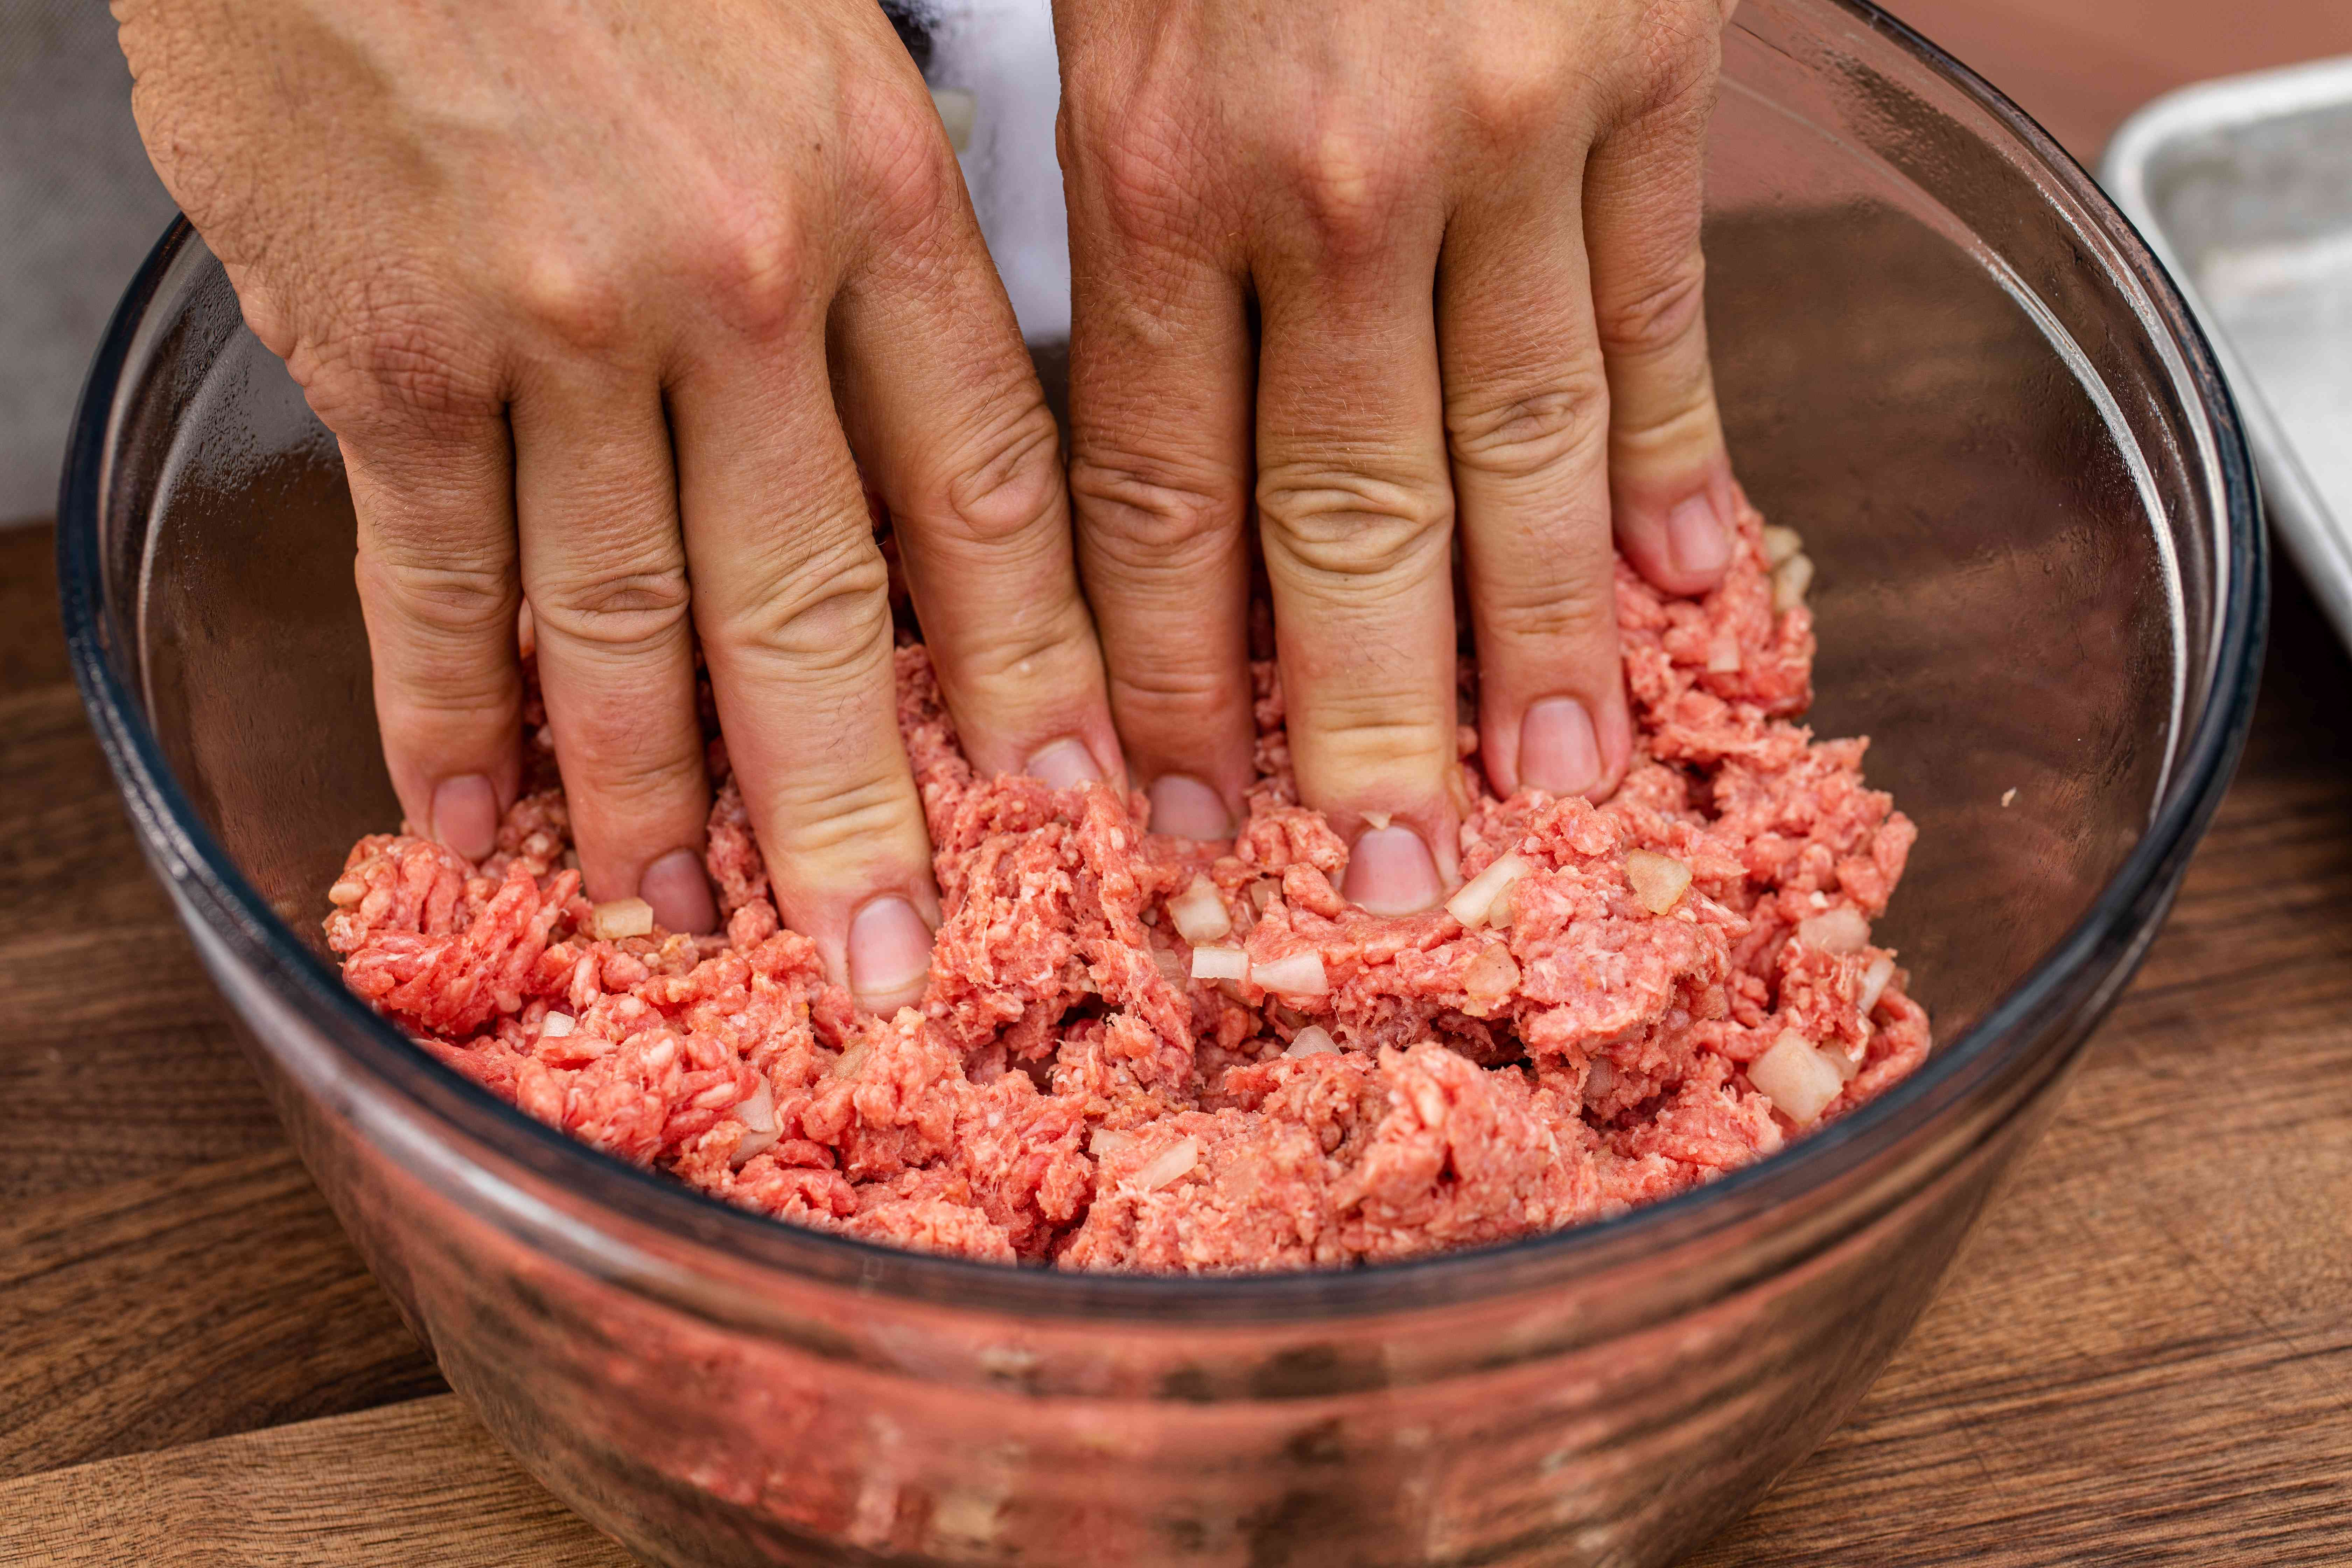 Using hands to mix in ingredients to make a classic bacon cheeseburger